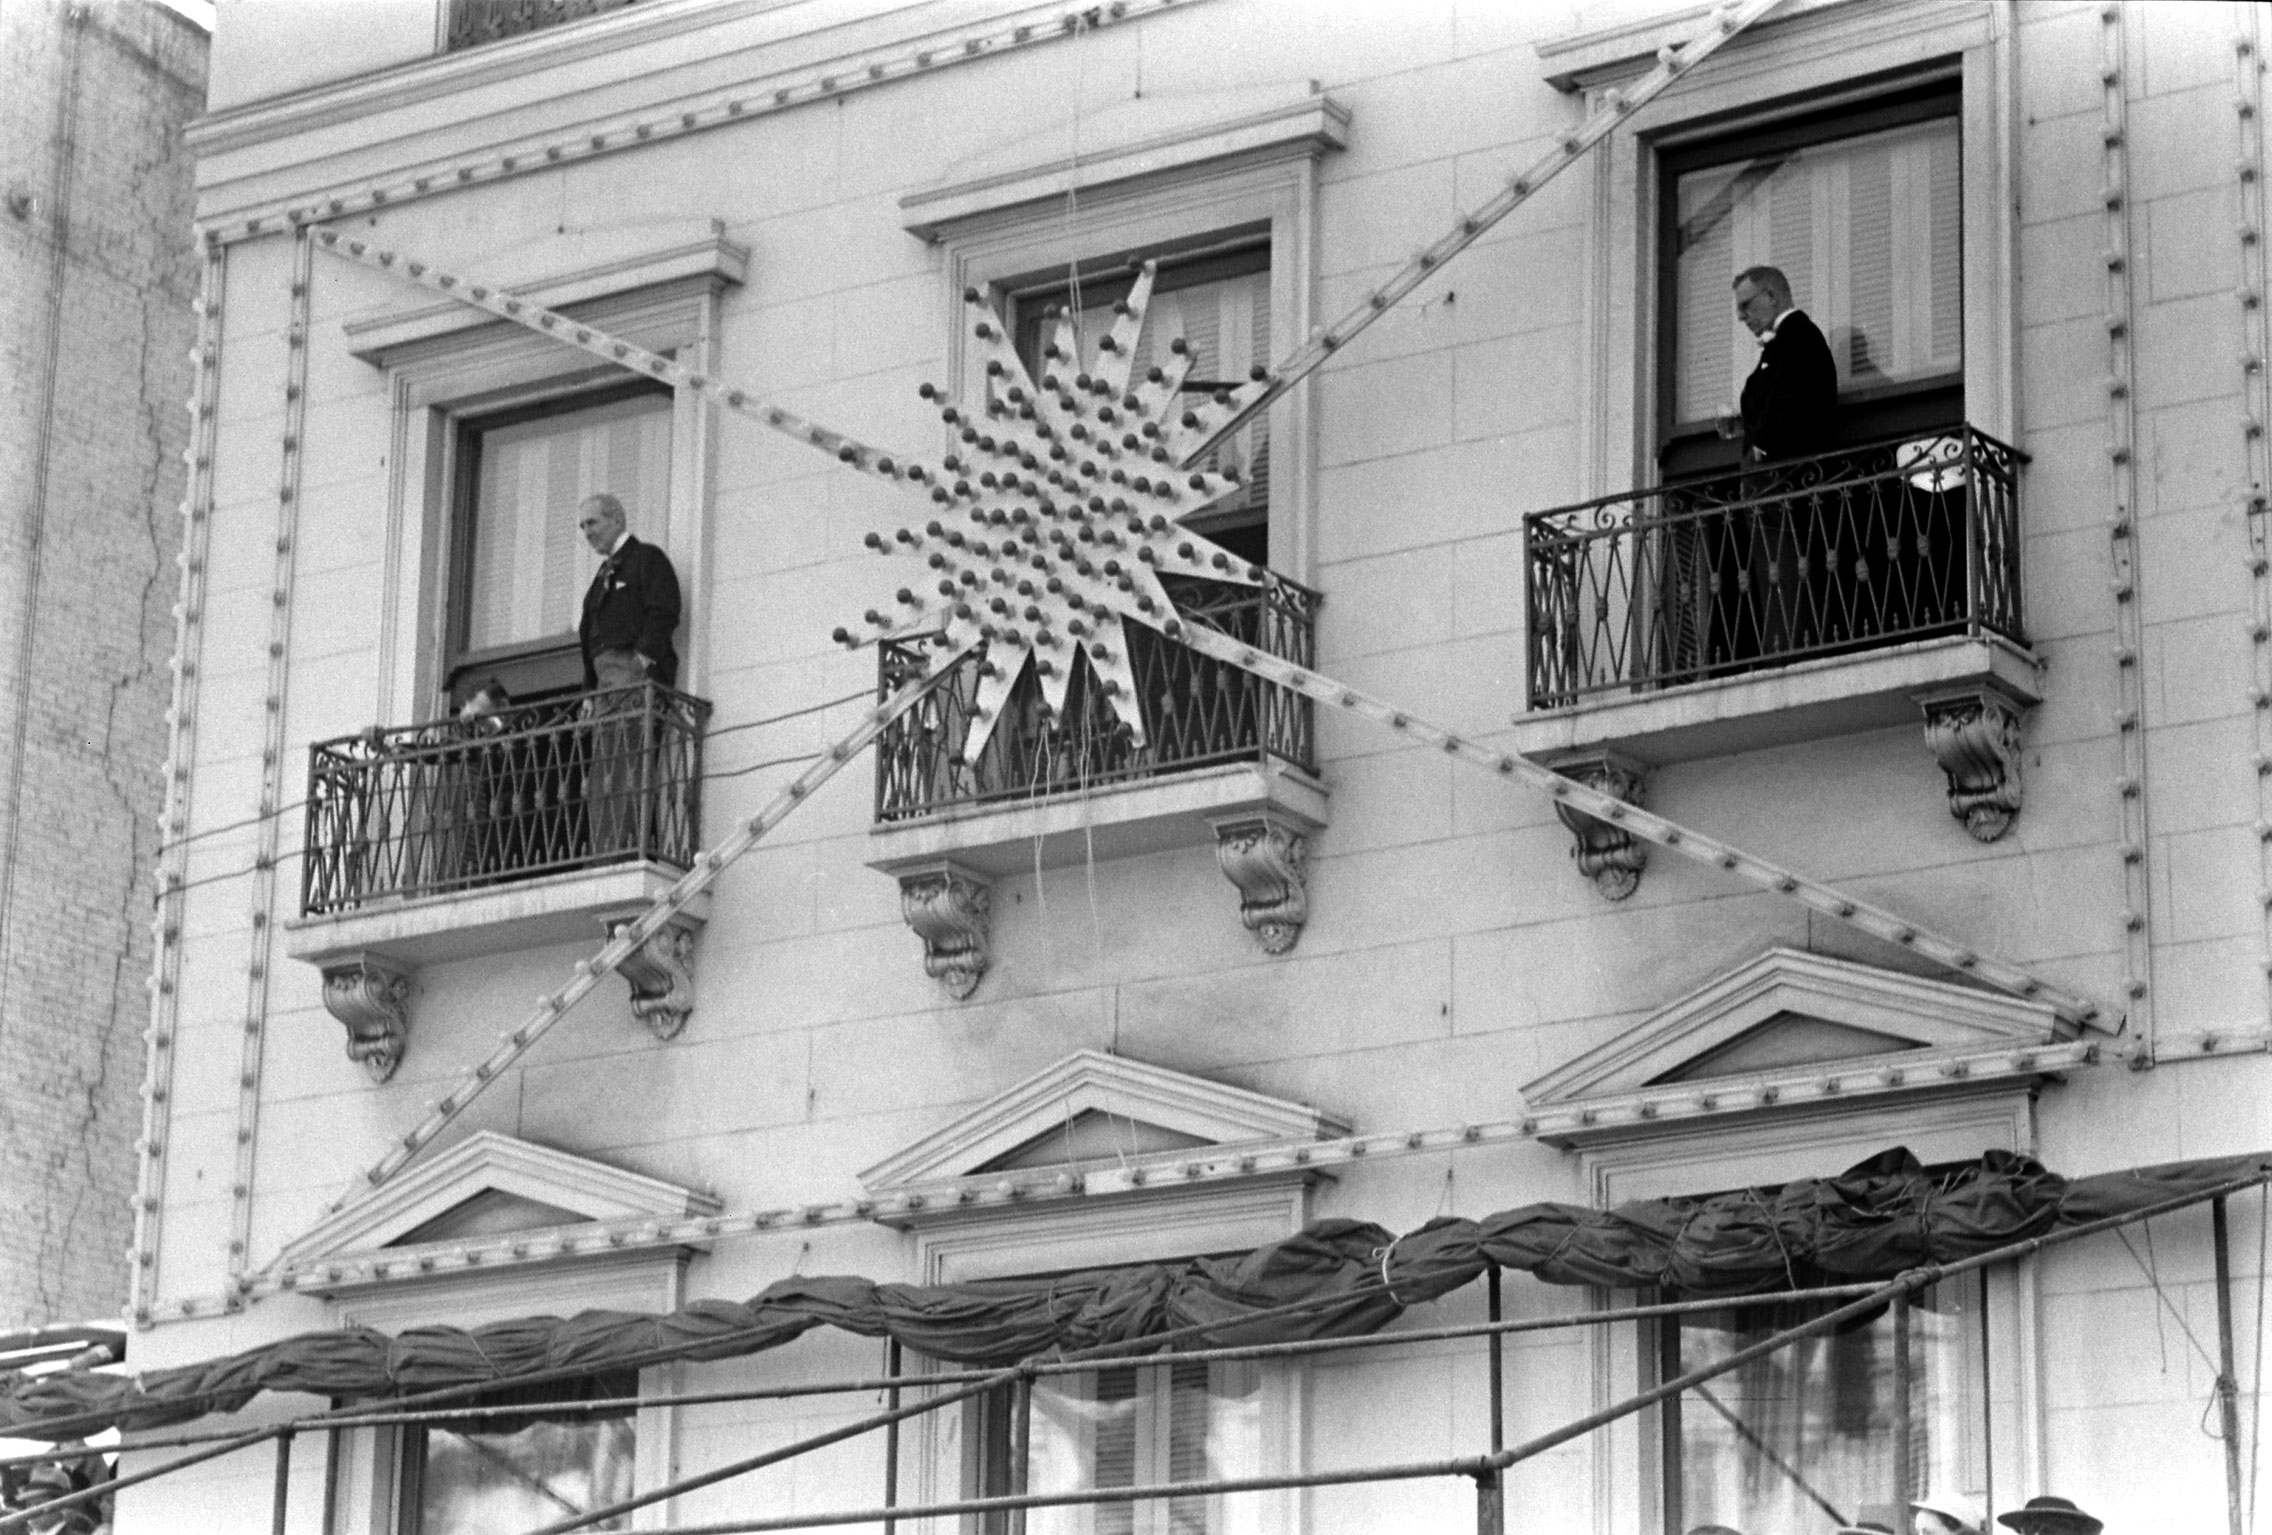 Mardi Gras decorations, New Orleans, 1938.